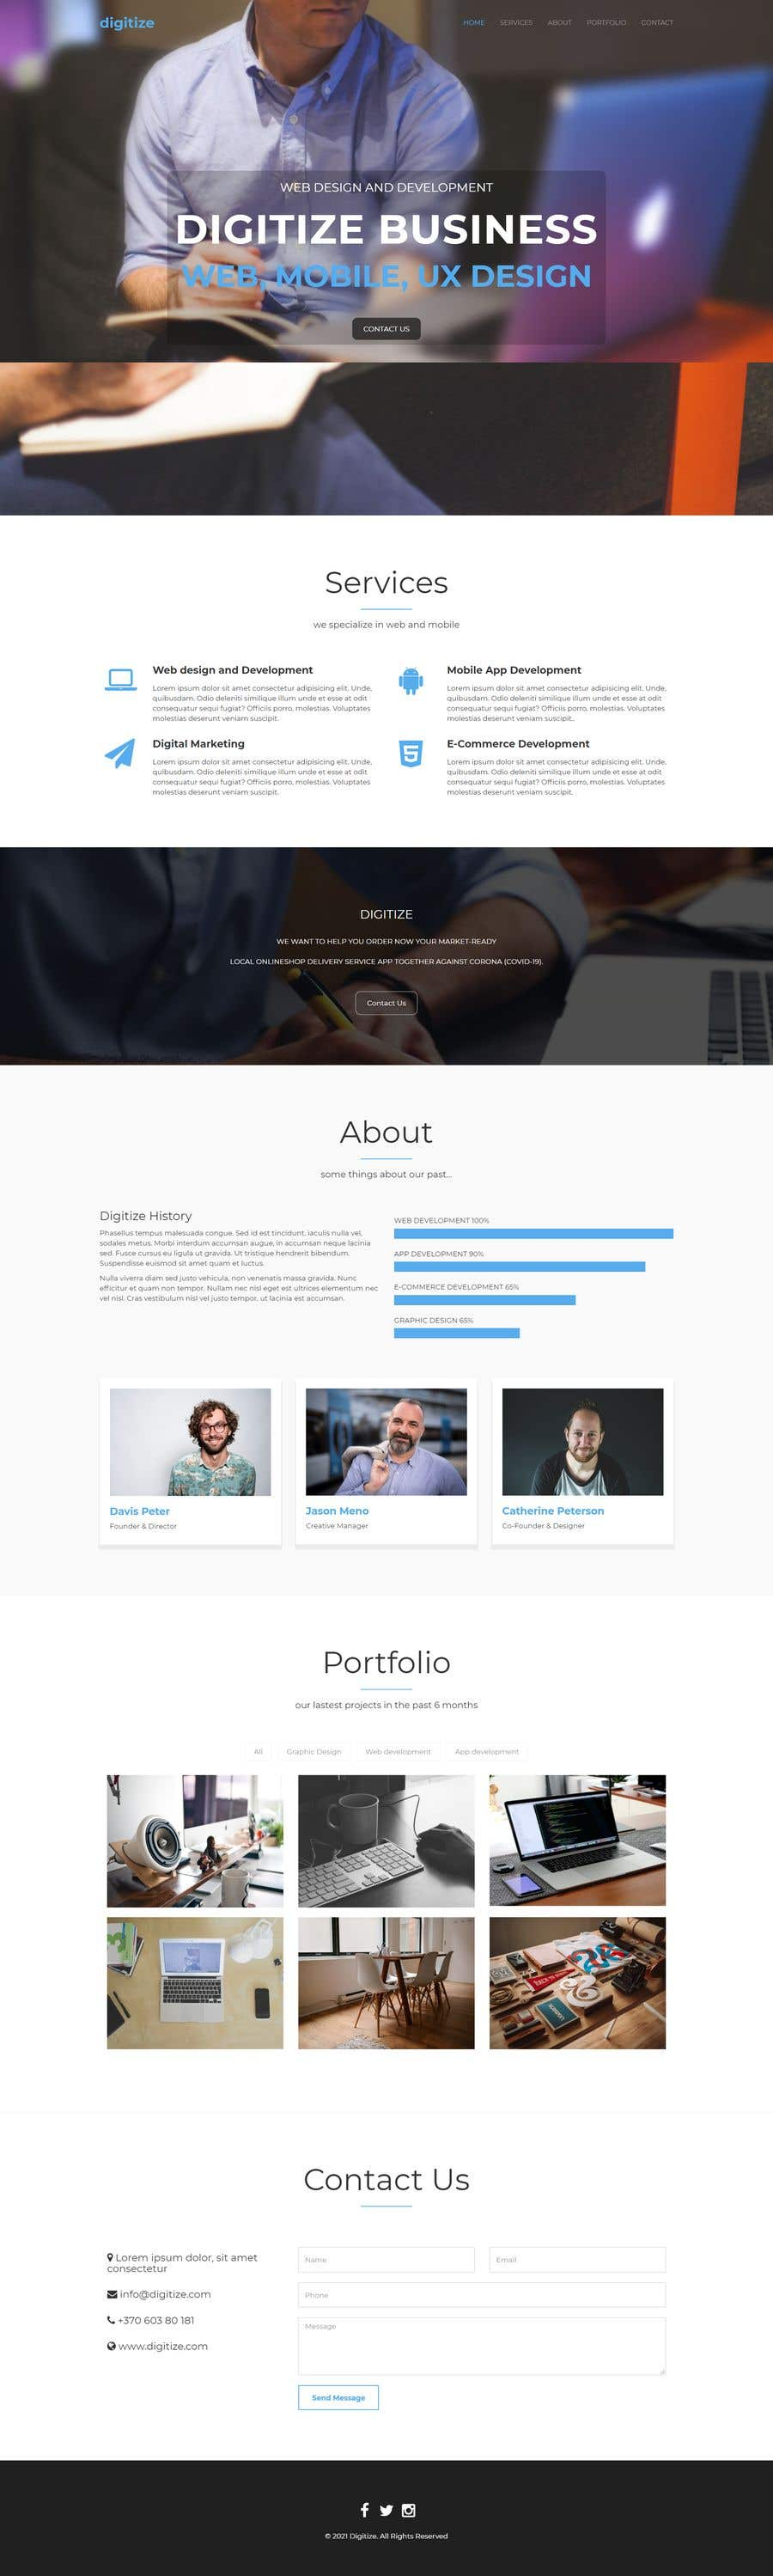 Bài tham dự cuộc thi #                                        49                                      cho                                         I need a Landing Page Website for Small Business Stores